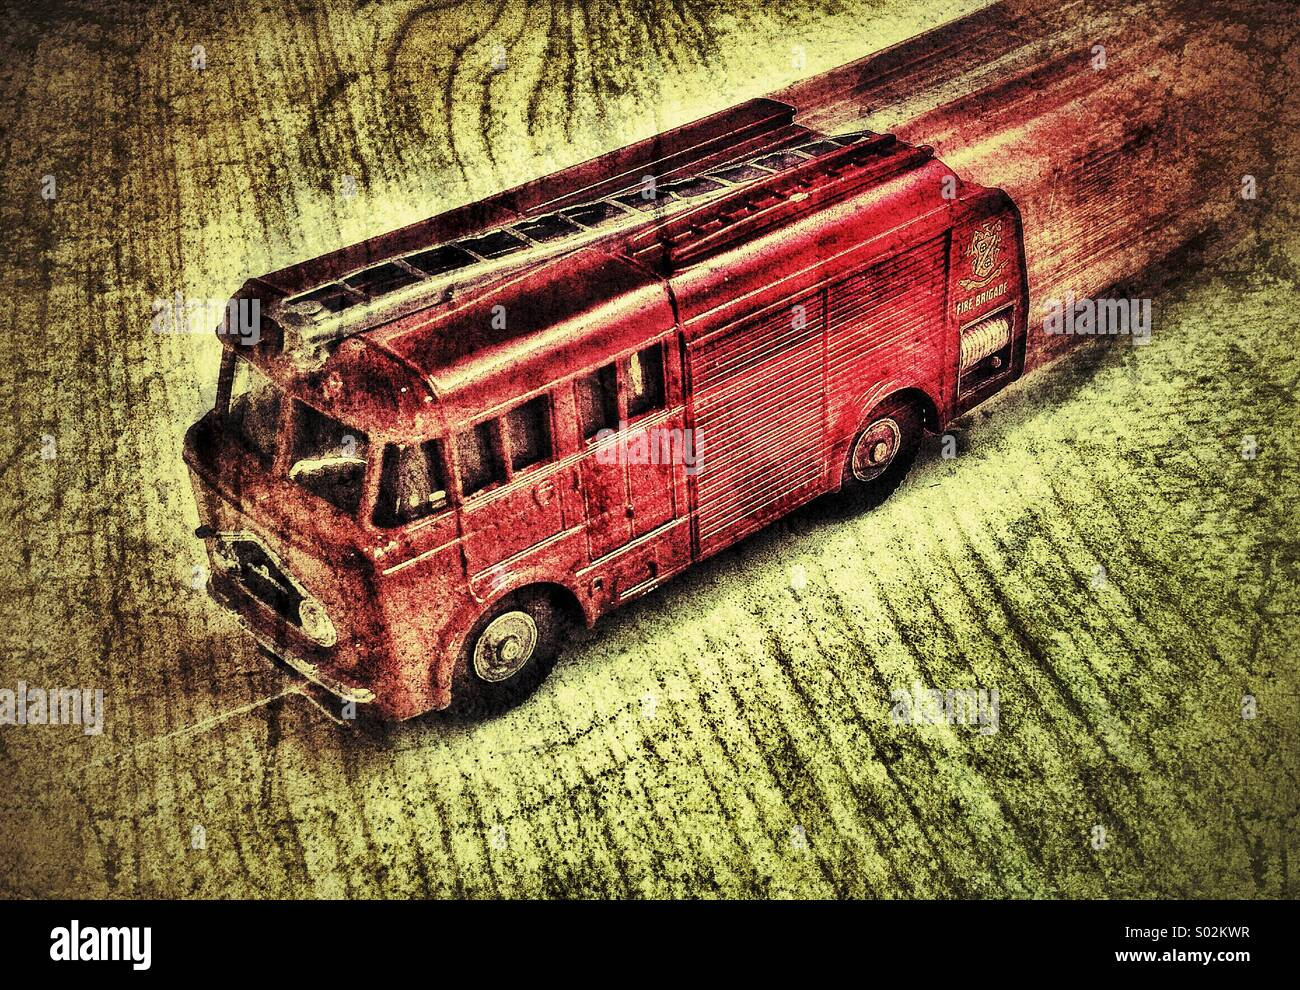 Fire Engine - Stock Image